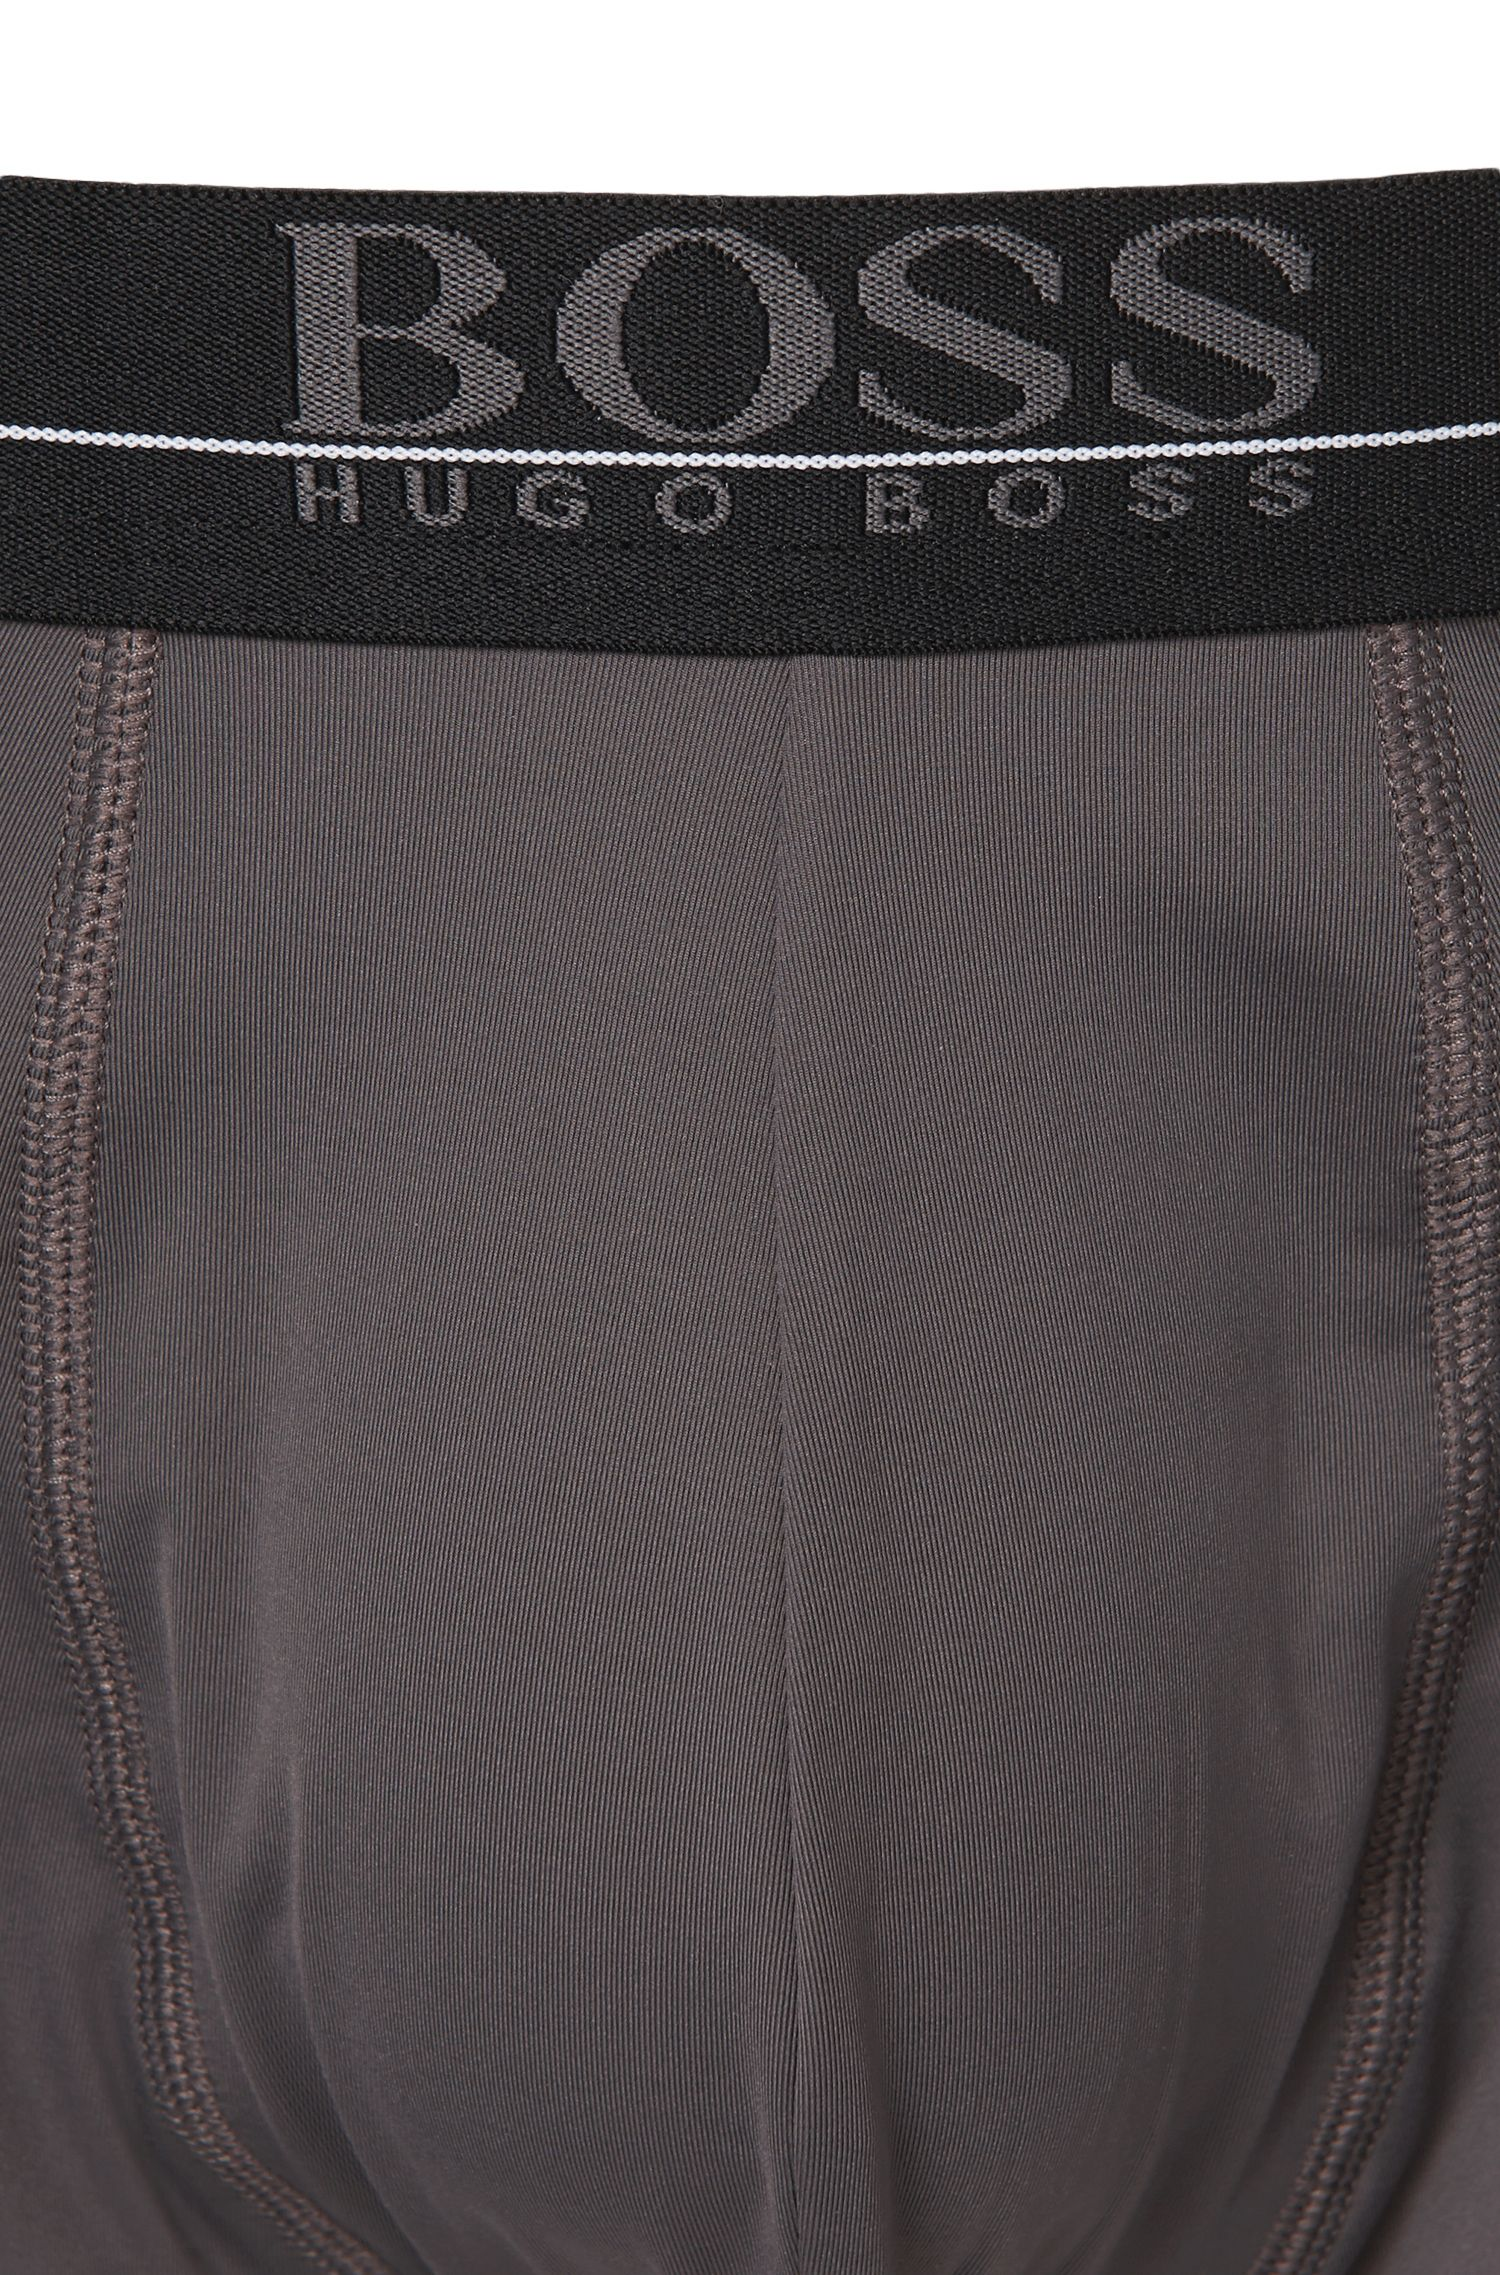 Regular-rise boxer briefs in stretch fabric